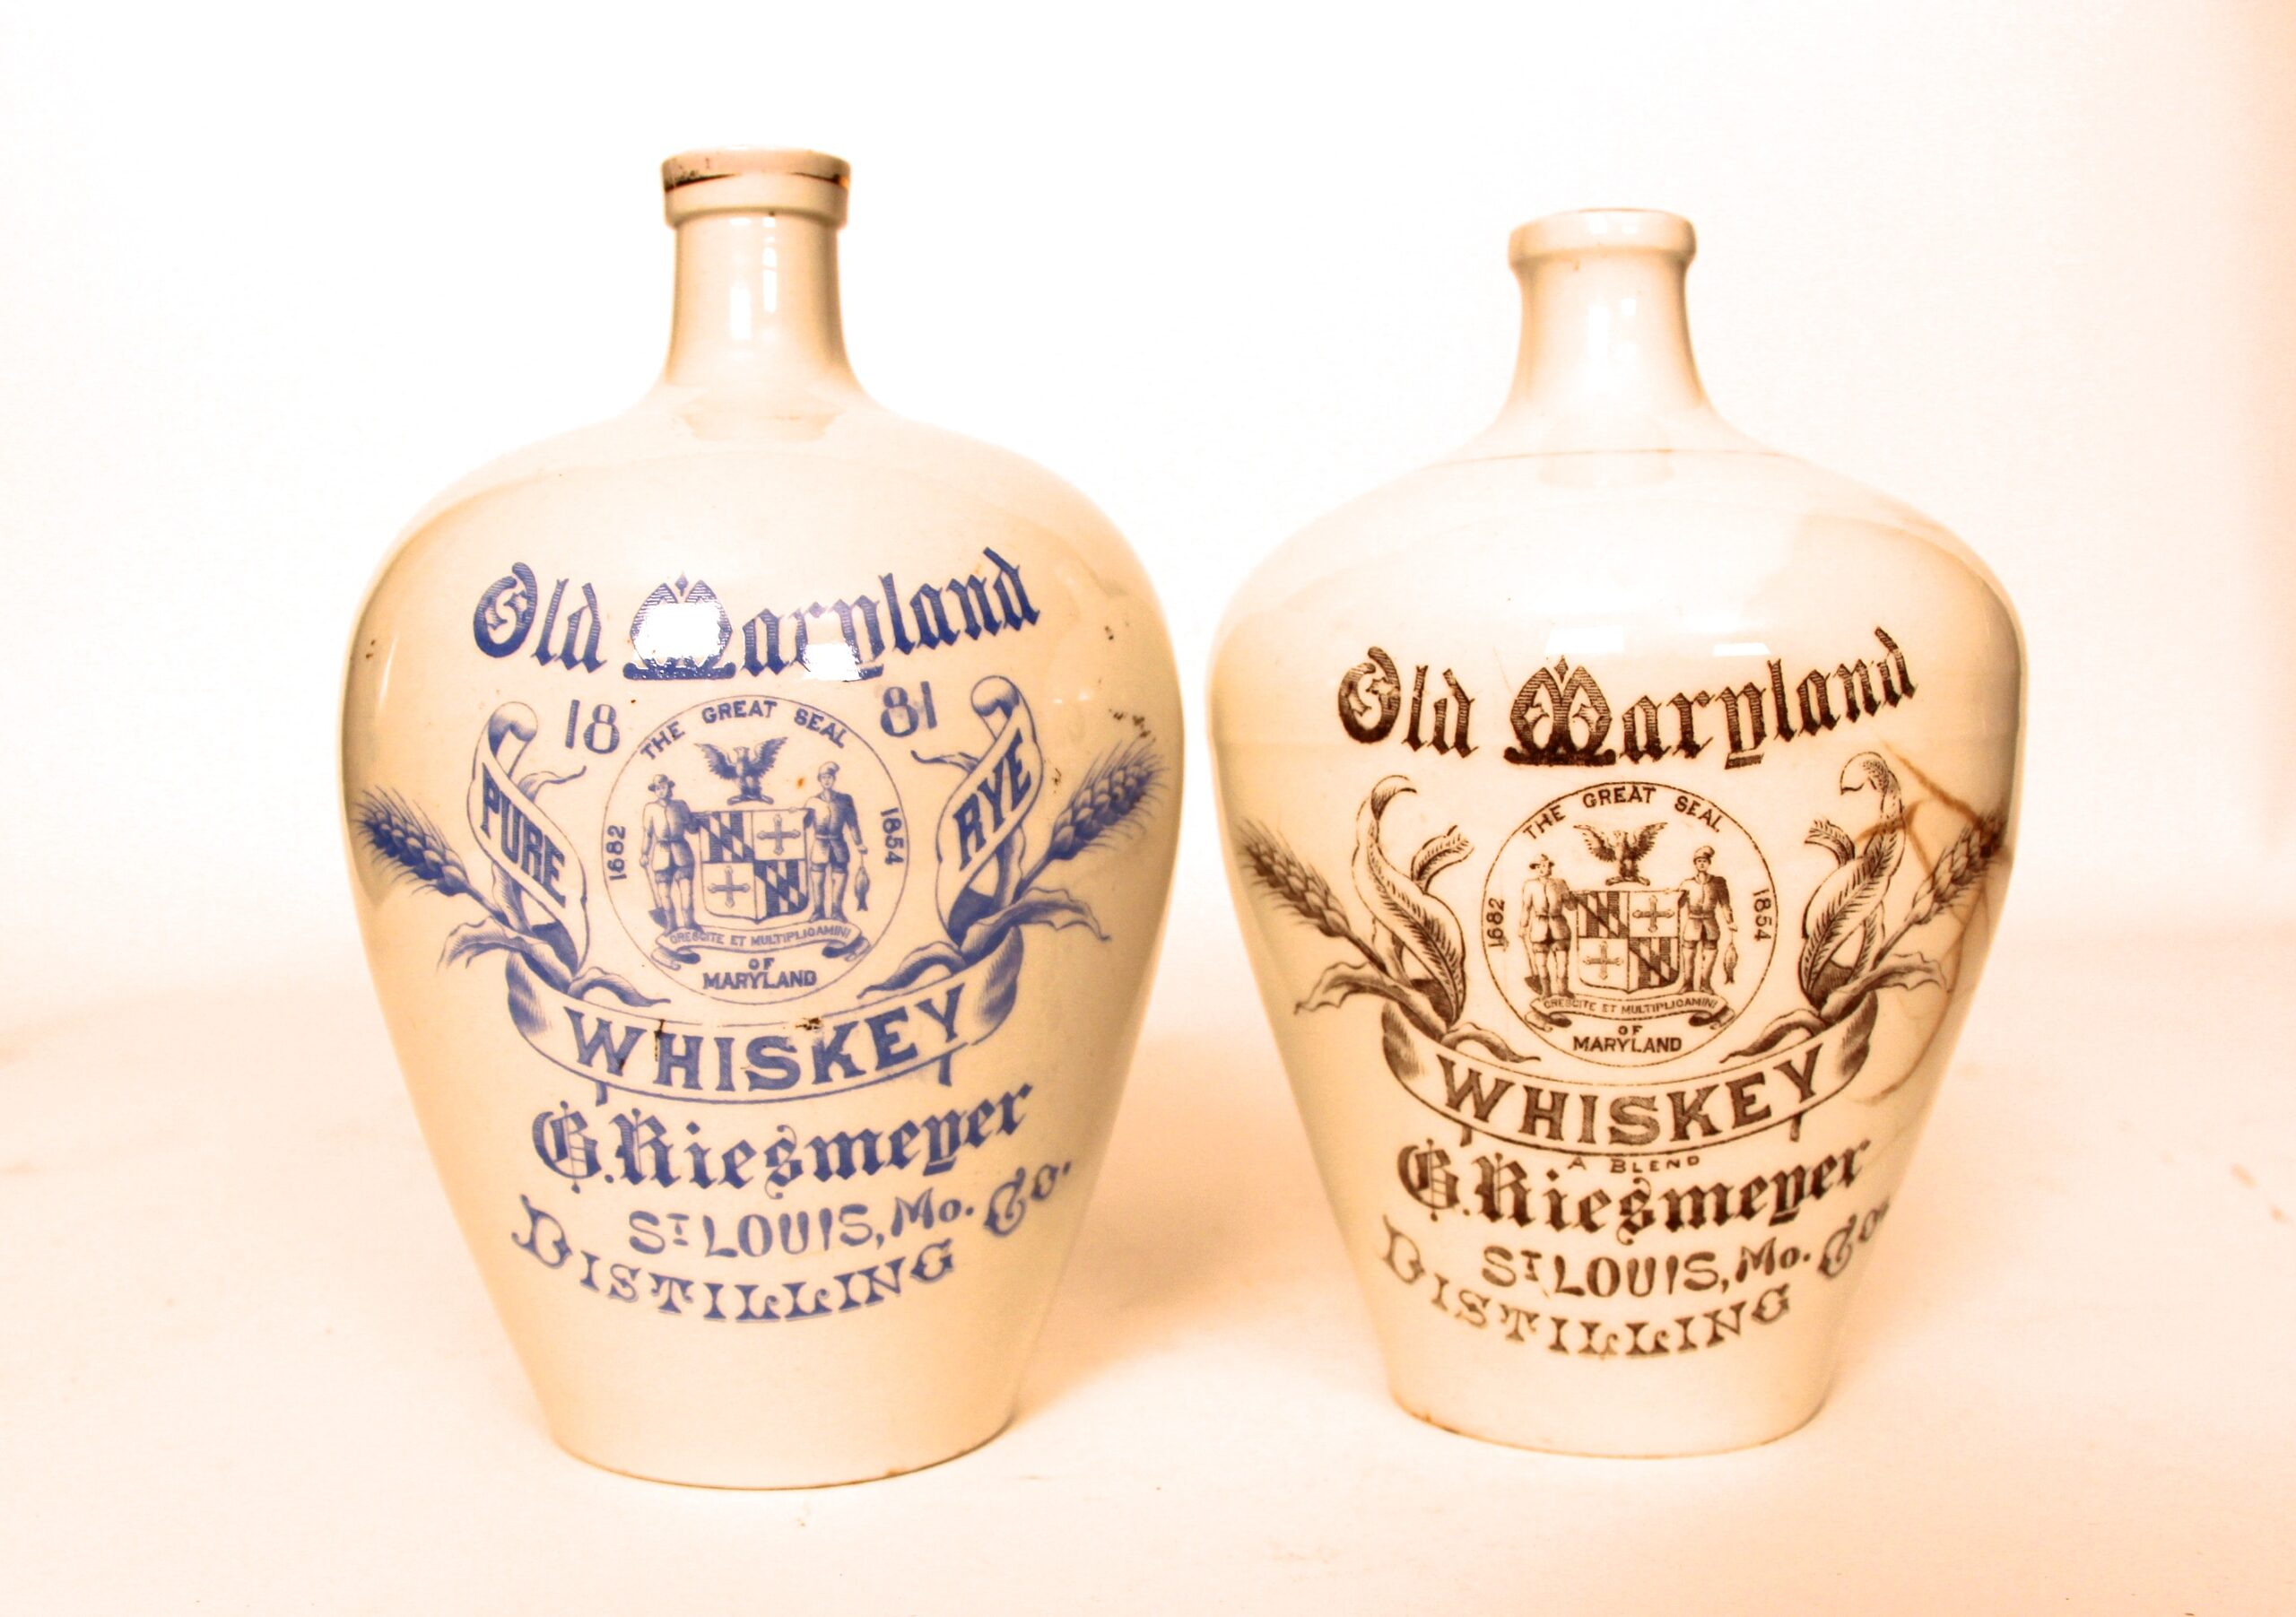 Riesmeyer Distilling Co, Pottery Whiskey Jugs, St. Louis, MO